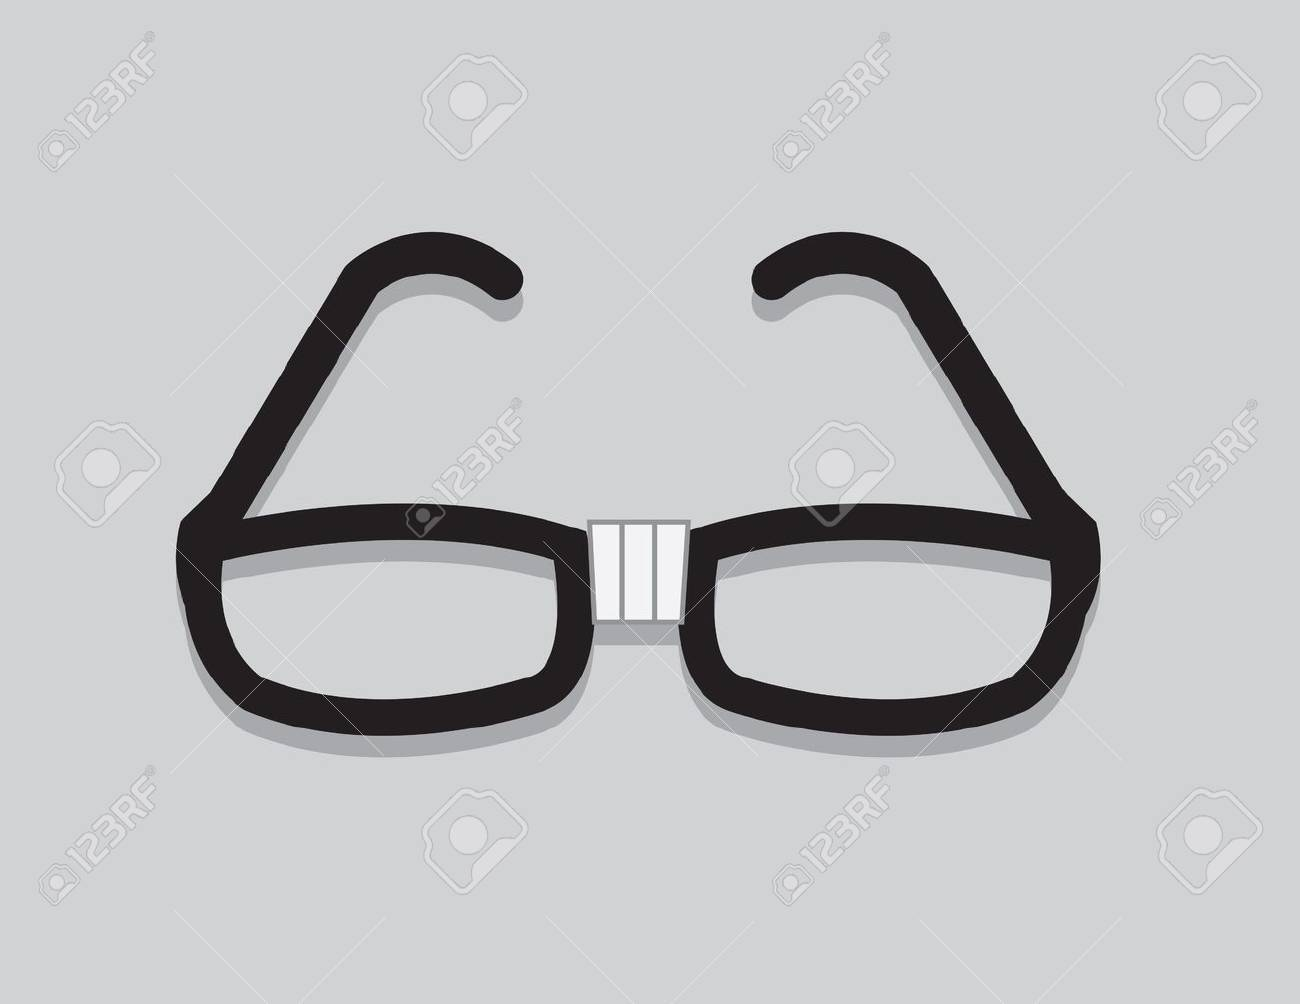 Nerdy glasses clipart 3 » Clipart Station.